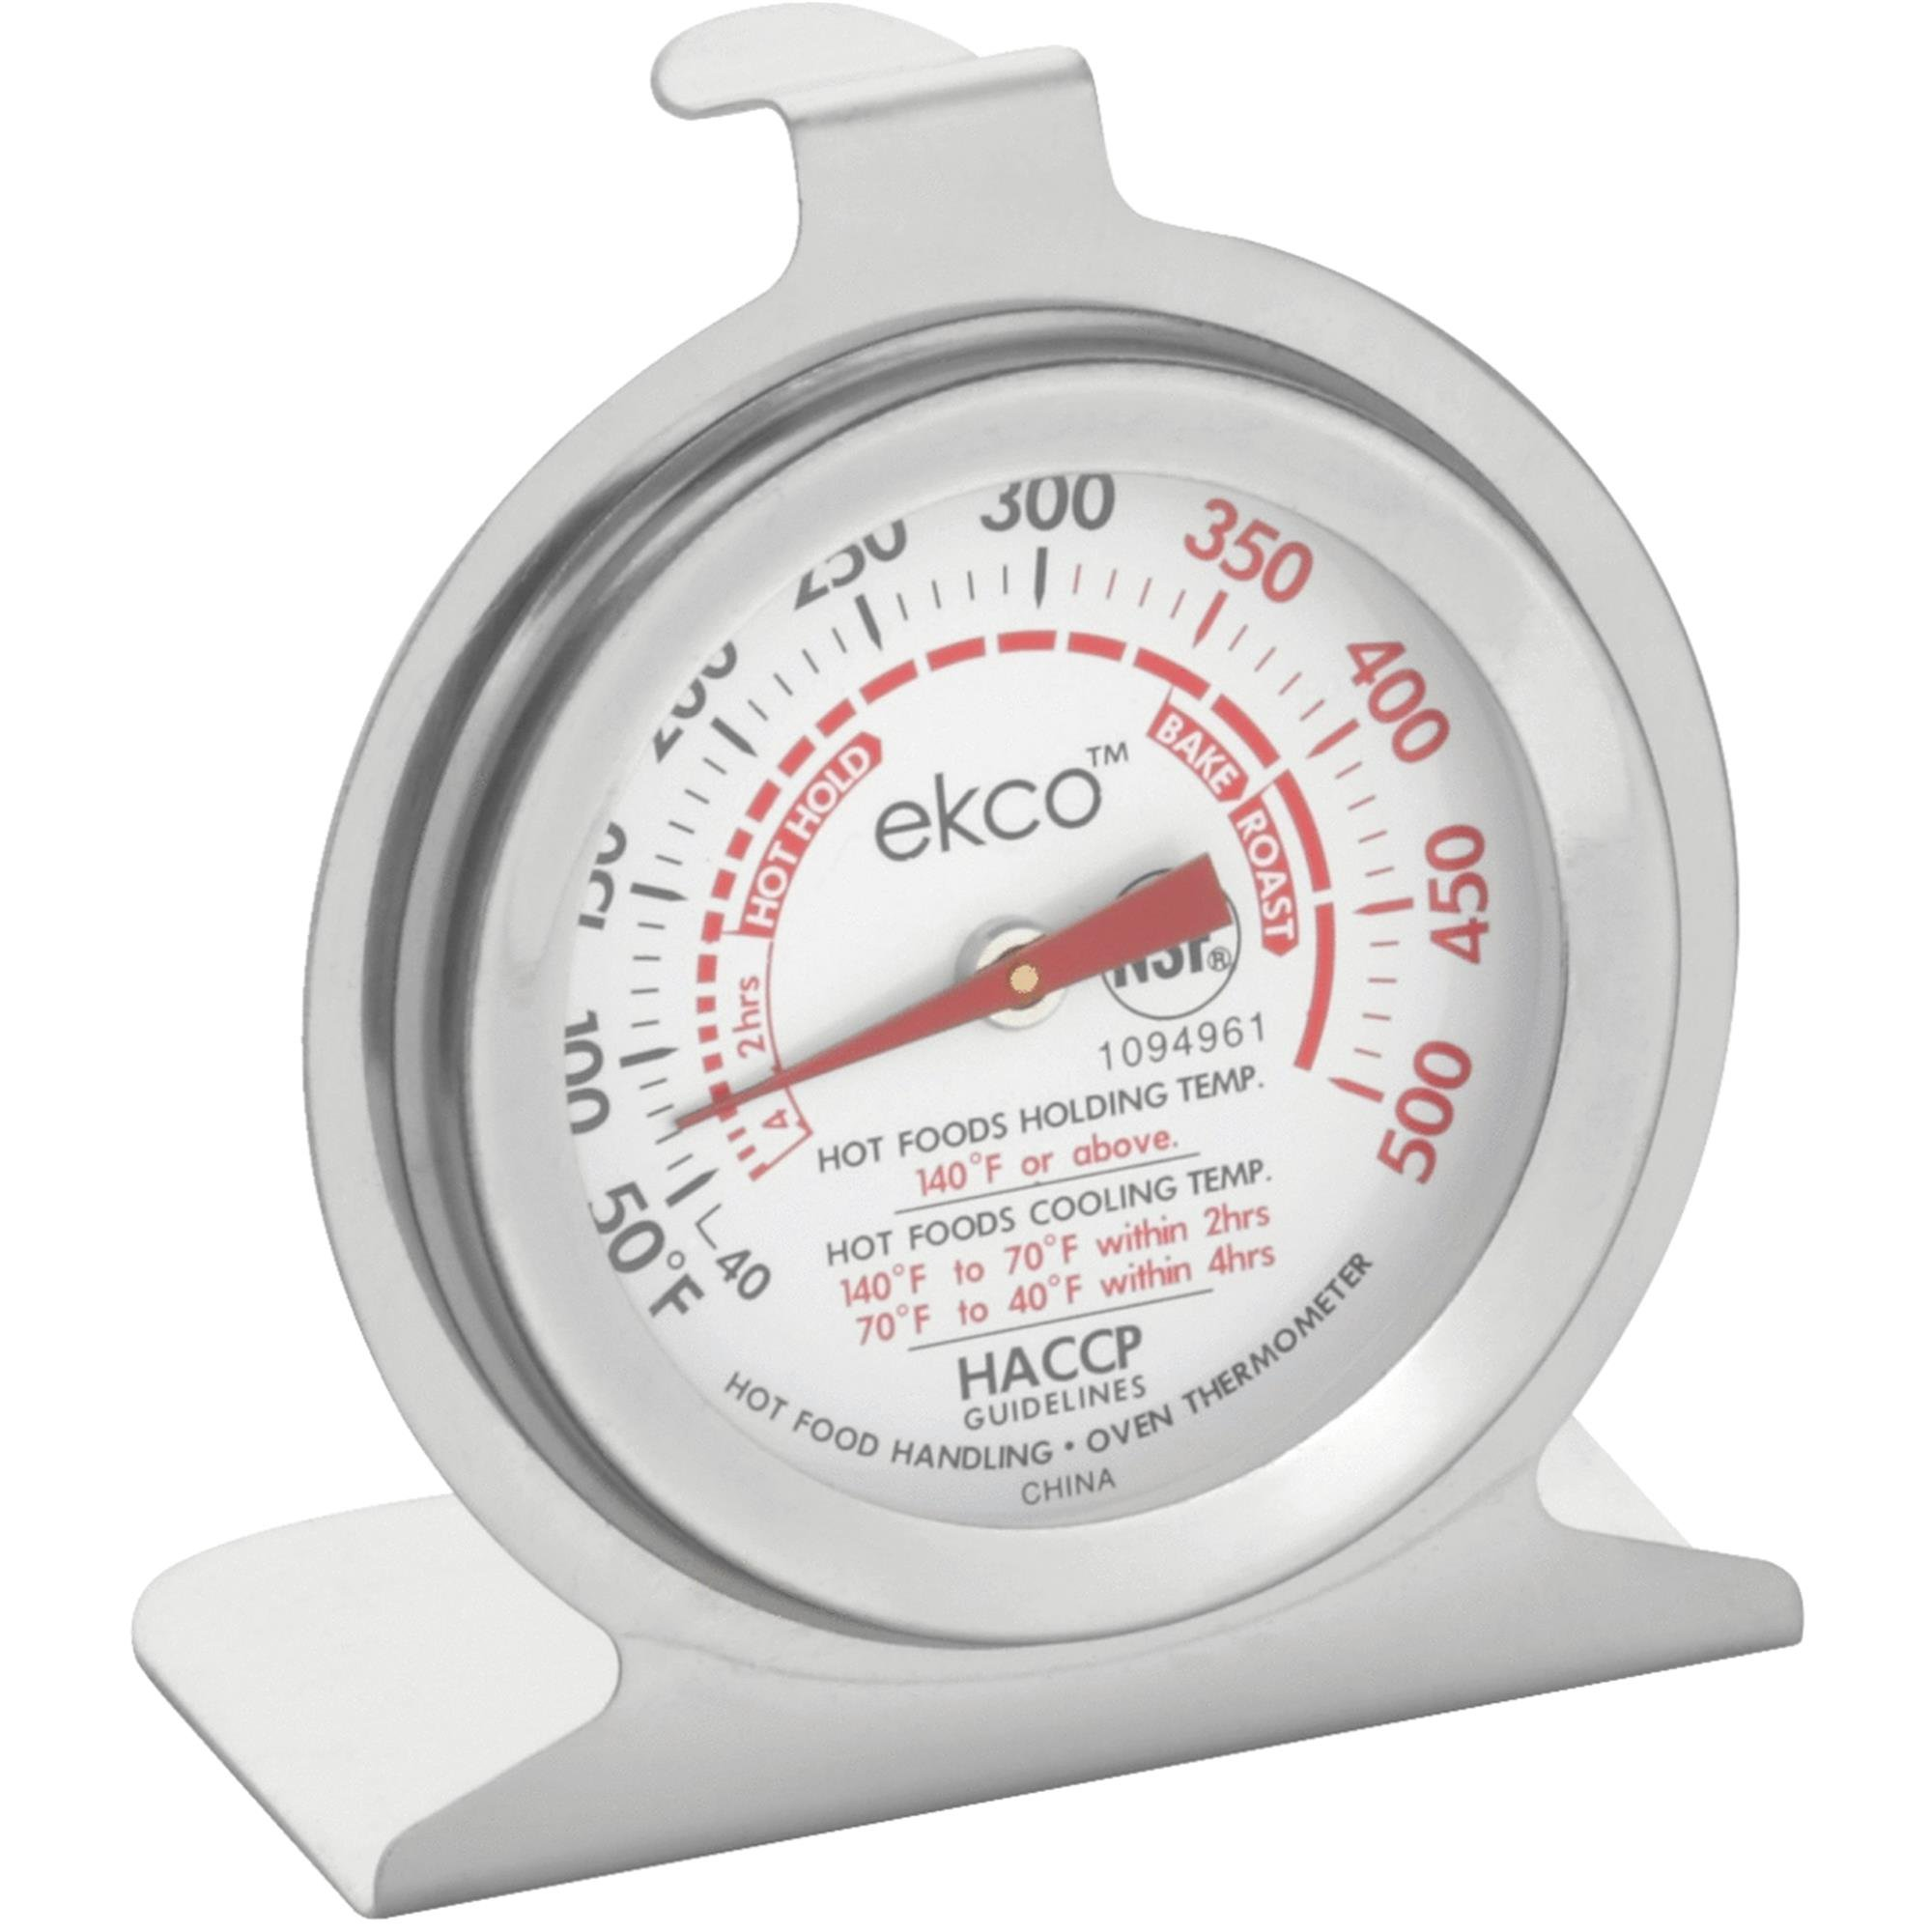 Ekco Oven Kitchen Thermometer